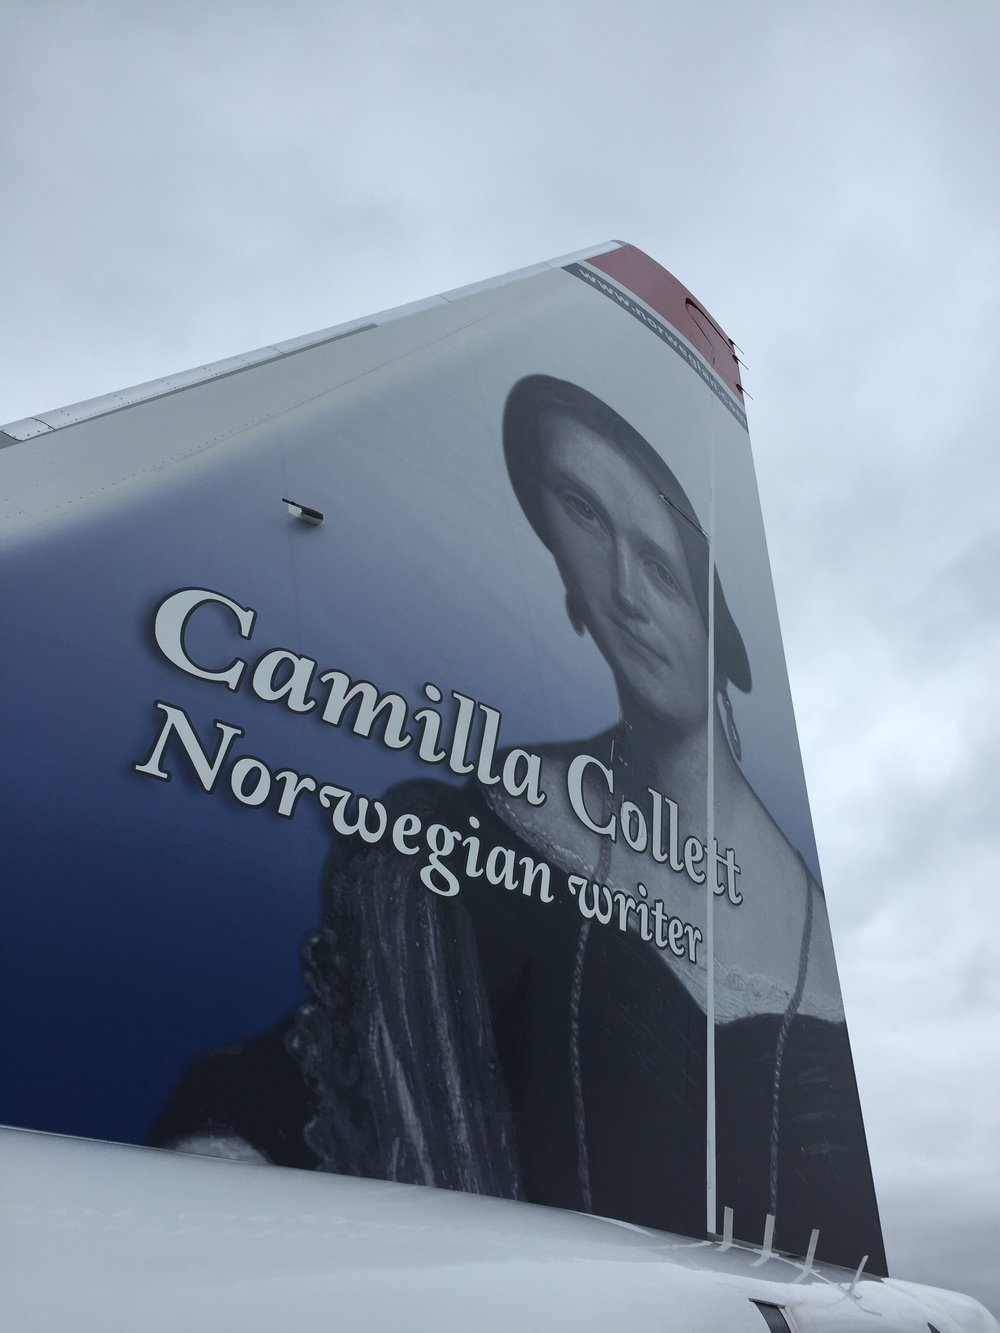 We flew on EI-FVN, a barely three-month old plane that honours  Camilla Collett , a Norwegian author I must admit I had not head about before